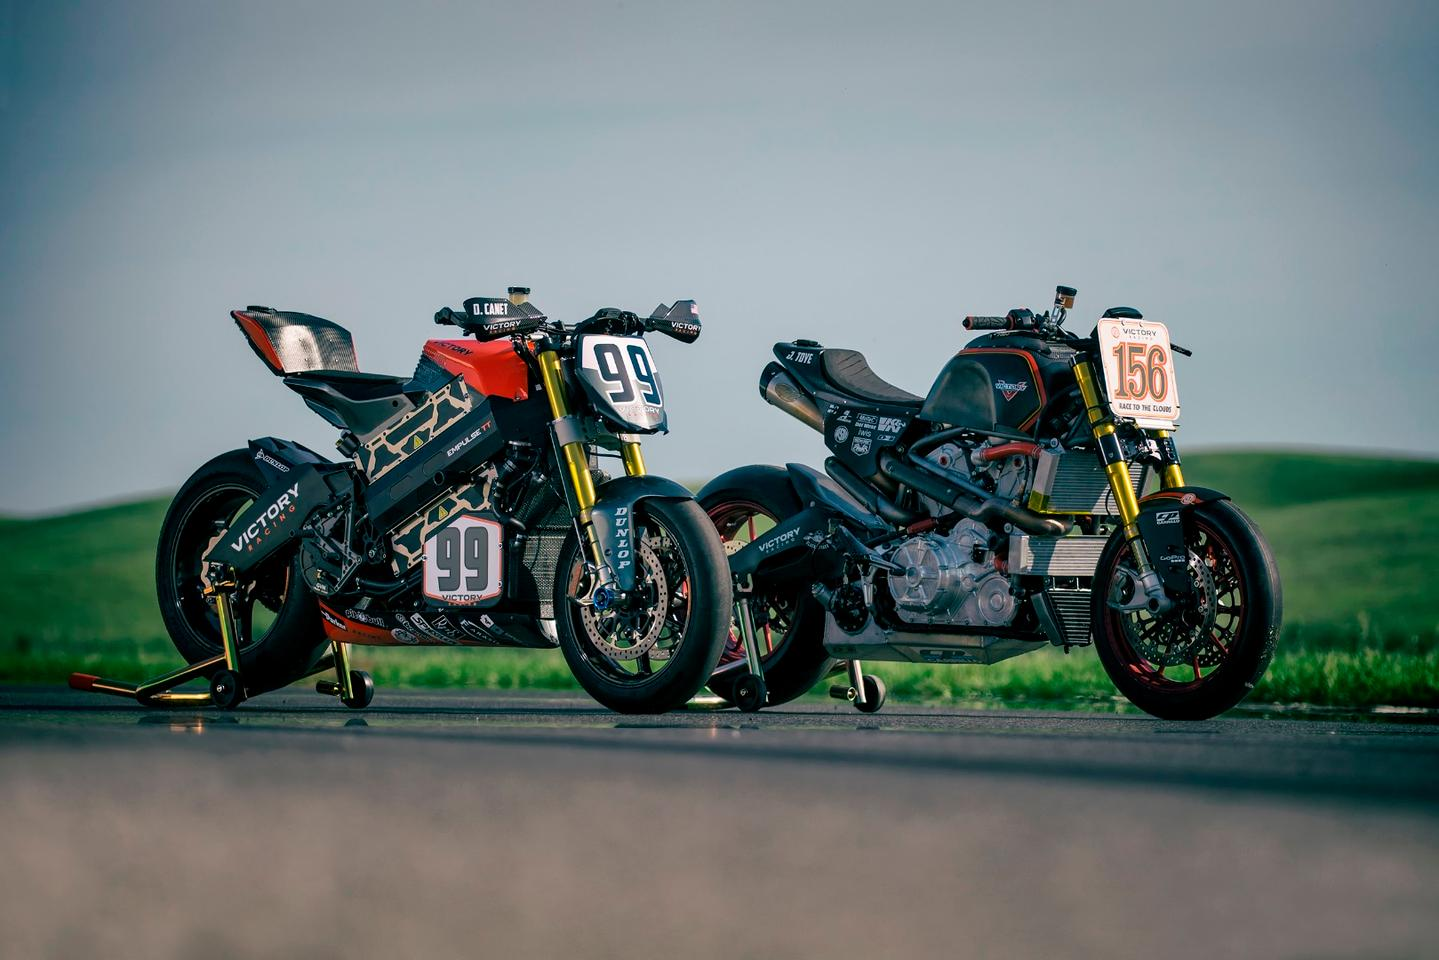 The Empulse RR (#99) and the Project 156 (#156) powered Victory Motorcycles' double assault at the 2016 Pikes Peak International Hill Climb